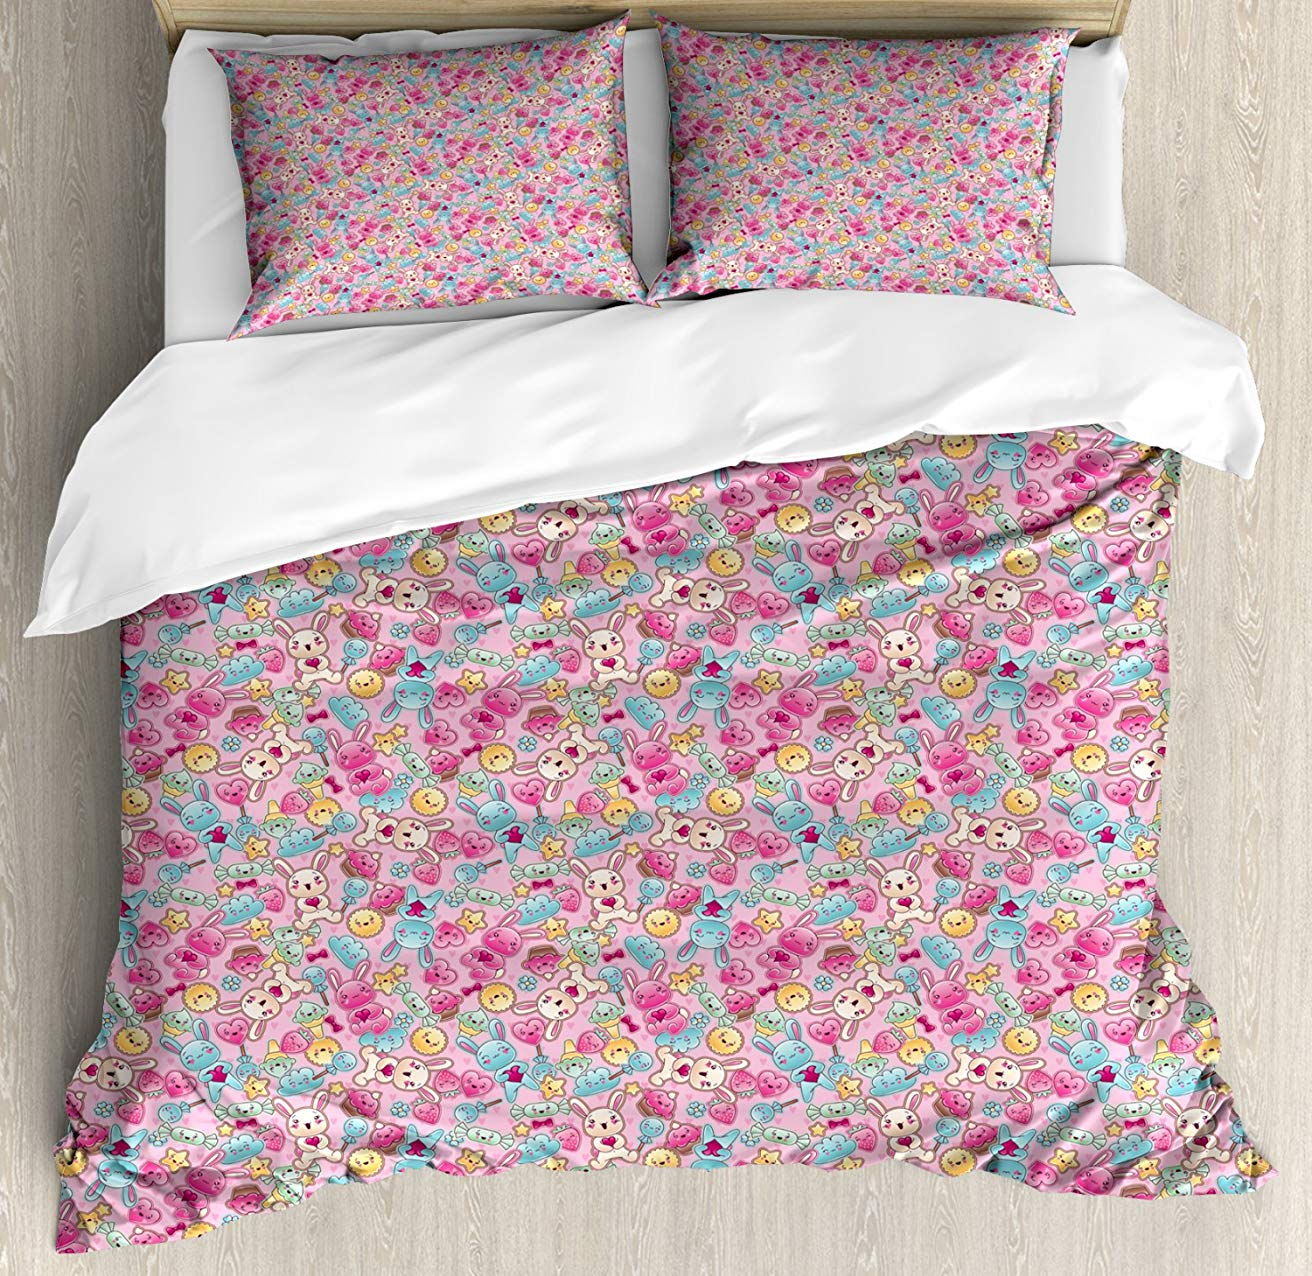 Baby Duvet Cover Set  Kawaii Bunnies Ice Cream and Candies Doodle Style Cartoon Drawing Abstract, Decorative 3 Piece Bedding SetBaby Duvet Cover Set  Kawaii Bunnies Ice Cream and Candies Doodle Style Cartoon Drawing Abstract, Decorative 3 Piece Bedding Set